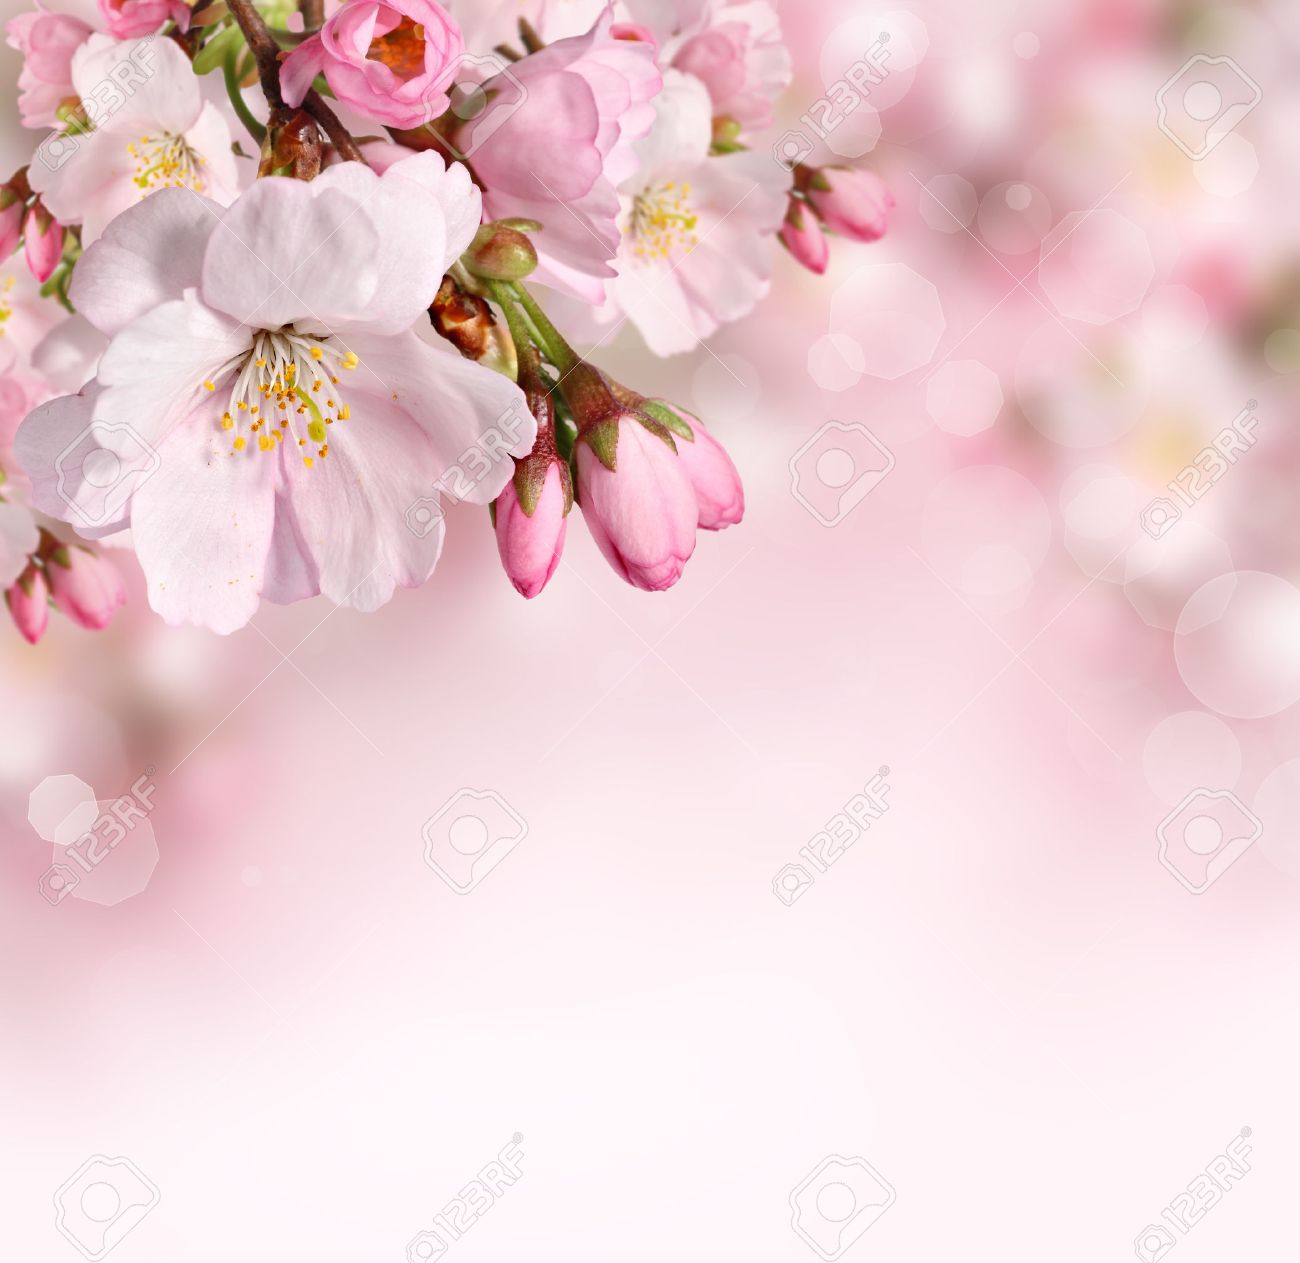 Spring Flowers Background With Pink Blossom Stock Photo Picture And